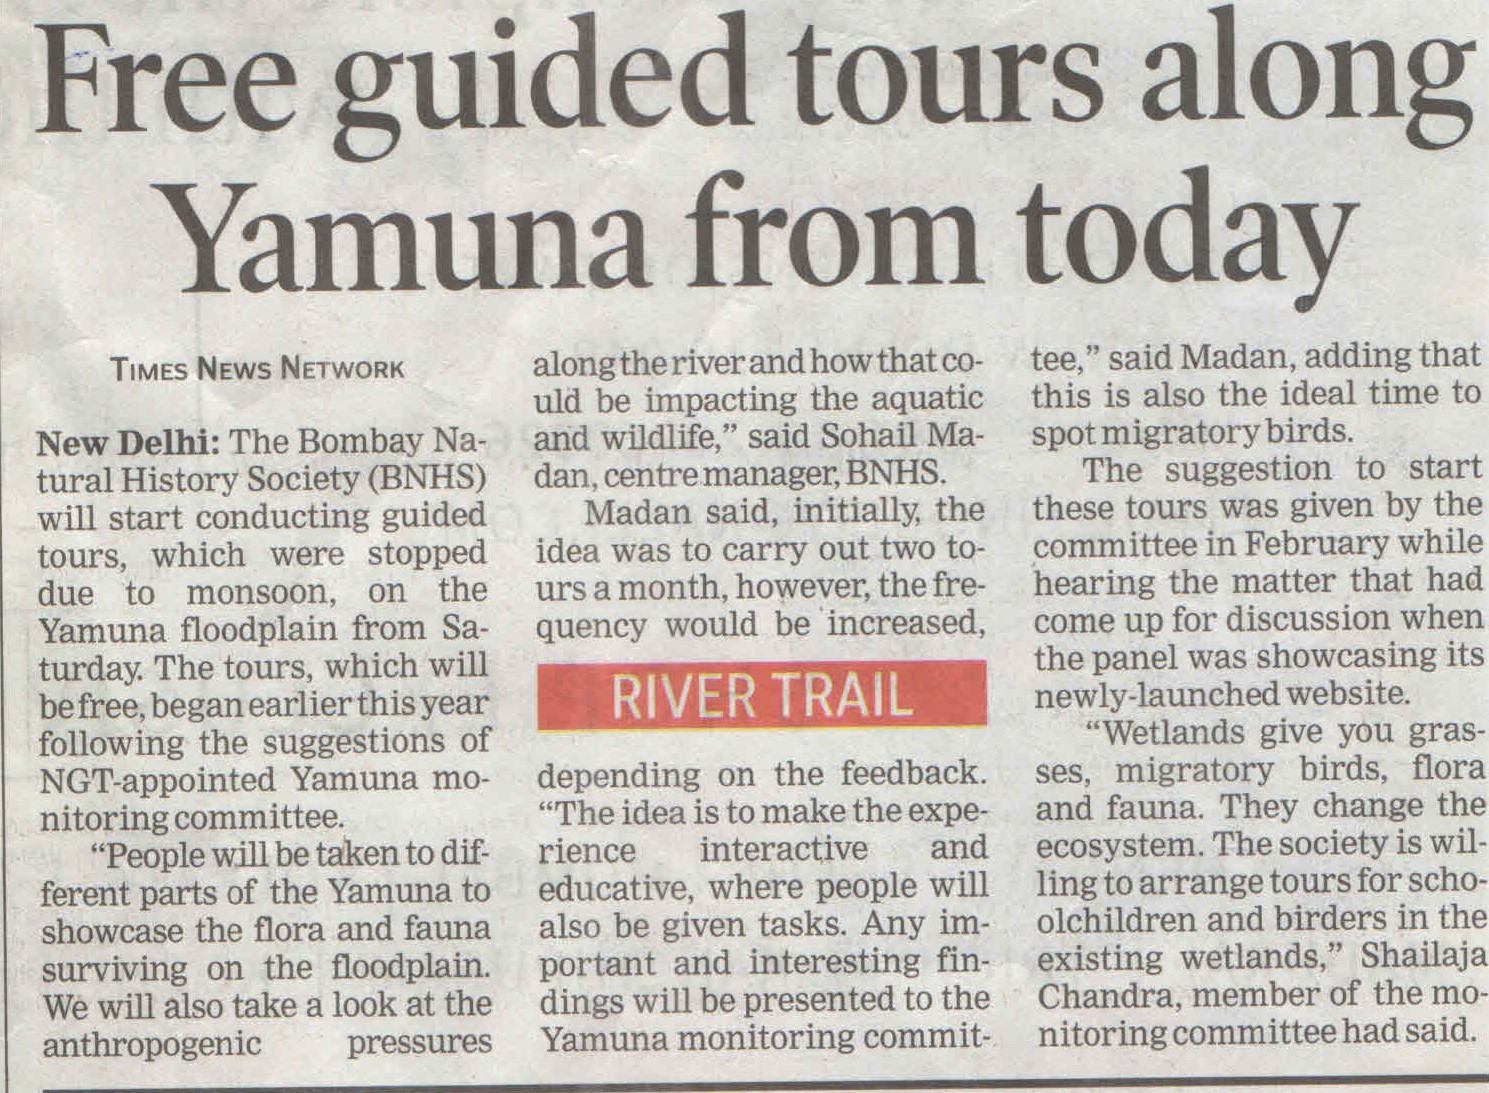 Free guided tours along Yamuna from today